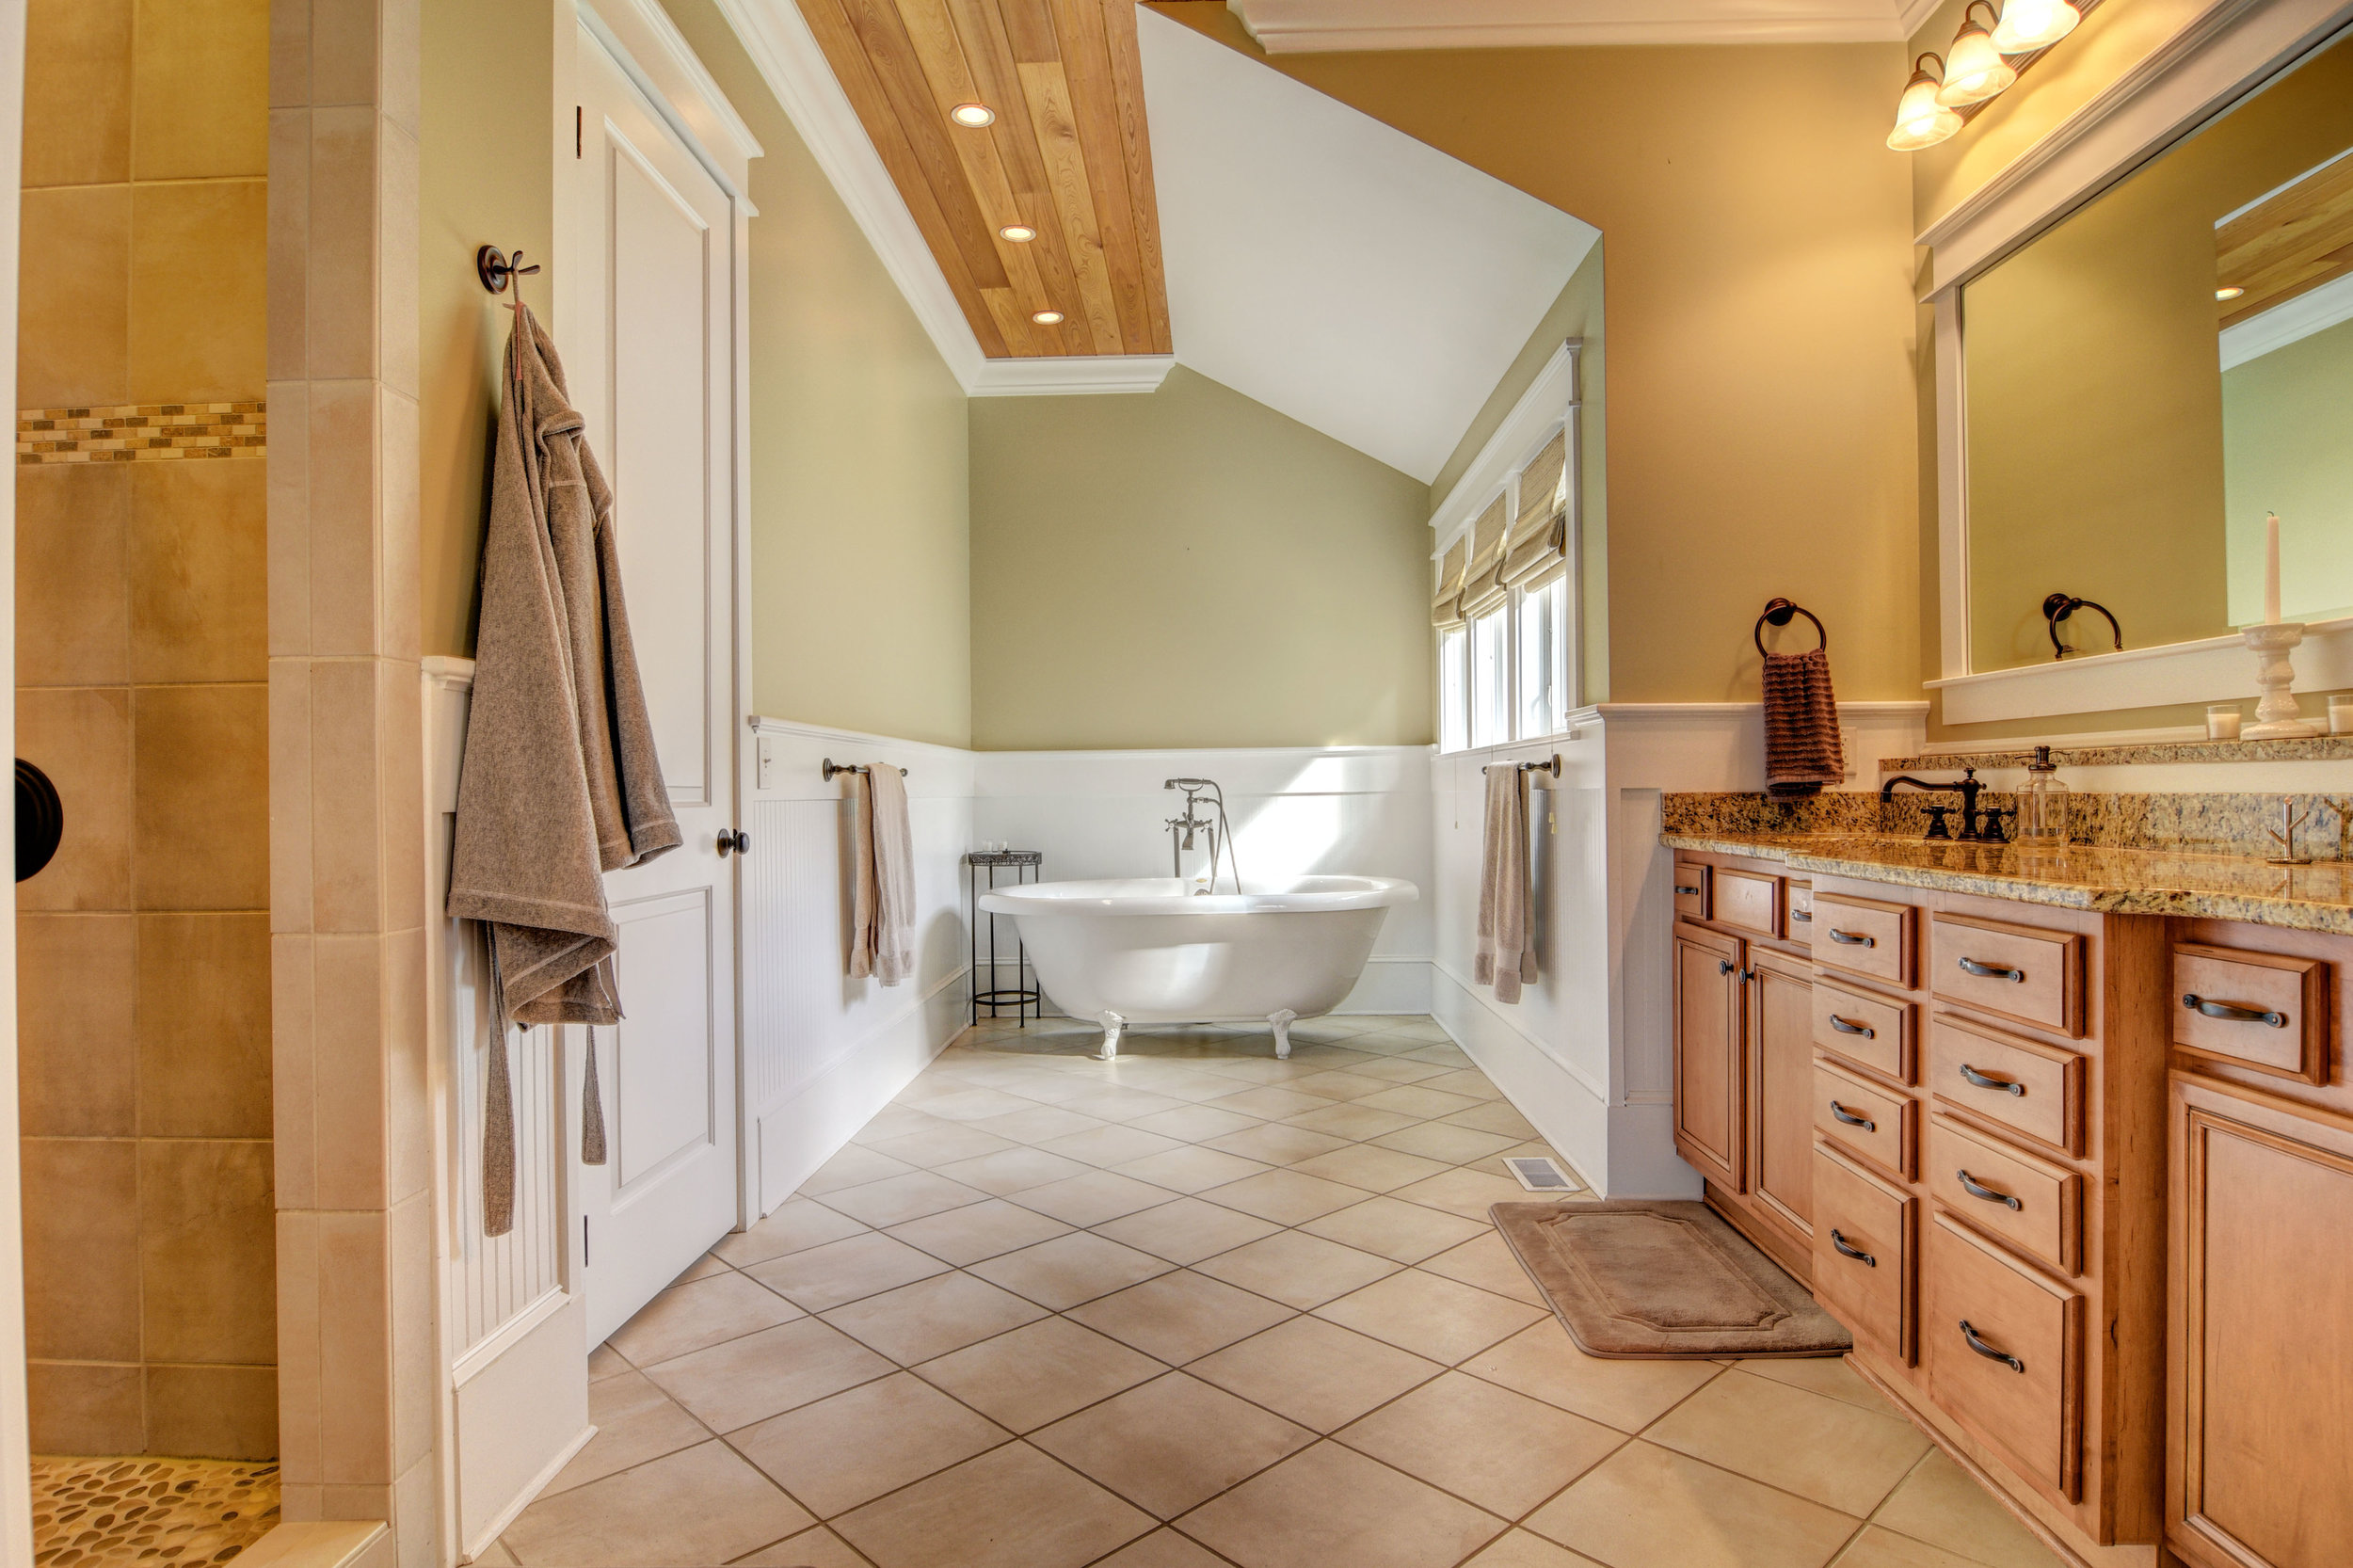 1037 Anchors Bend Way-print-017-4-Master Bath-4200x2799-300dpi.jpg